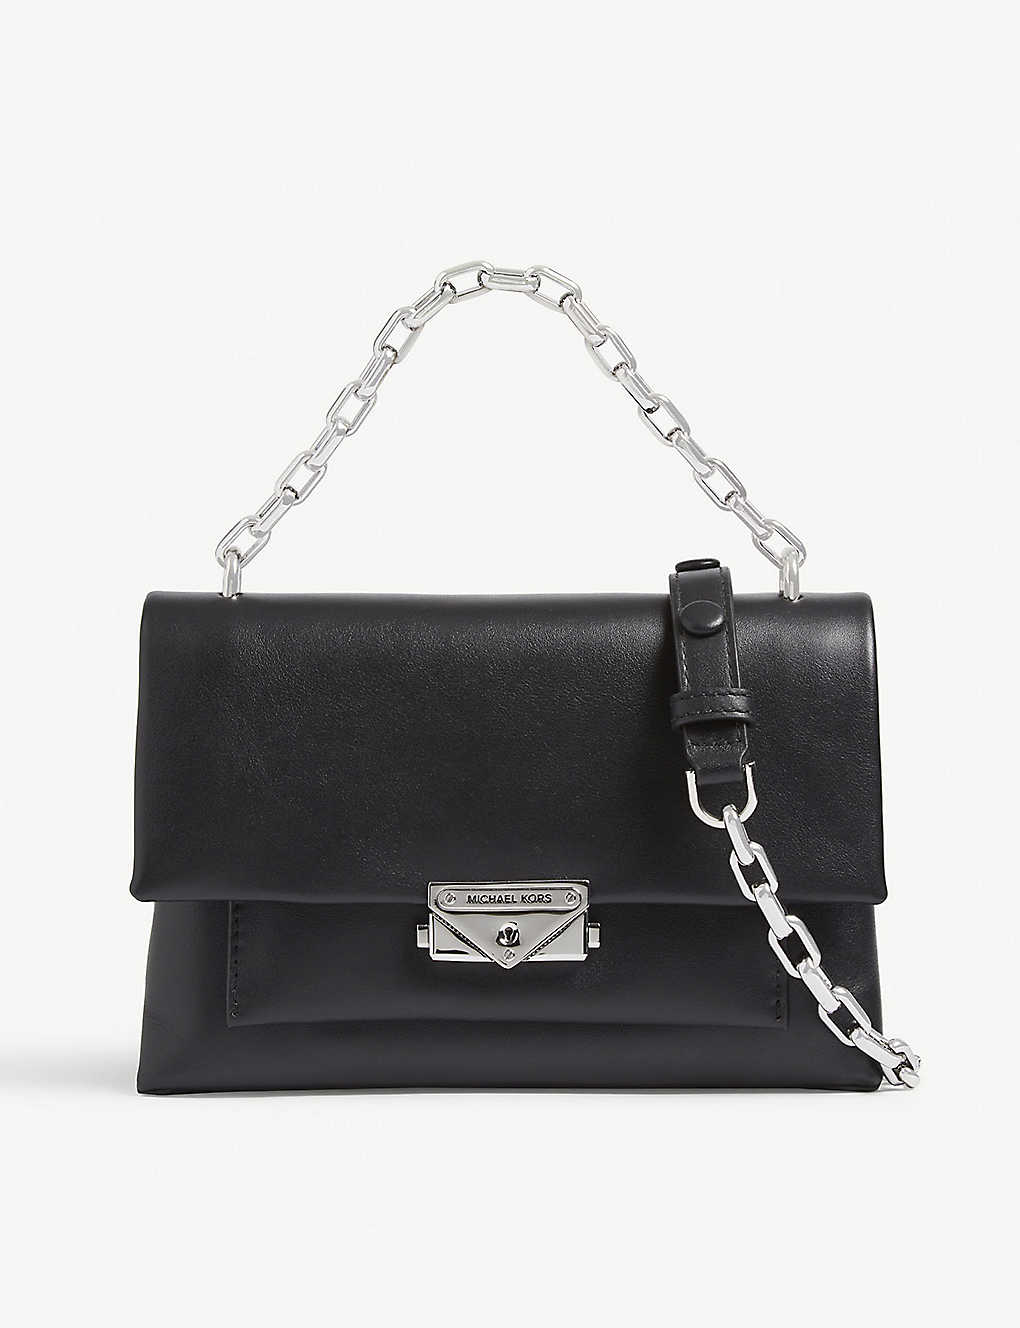 9959656eb6e0 MICHAEL MICHAEL KORS - Cece medium leather shoulder bag | Selfridges.com